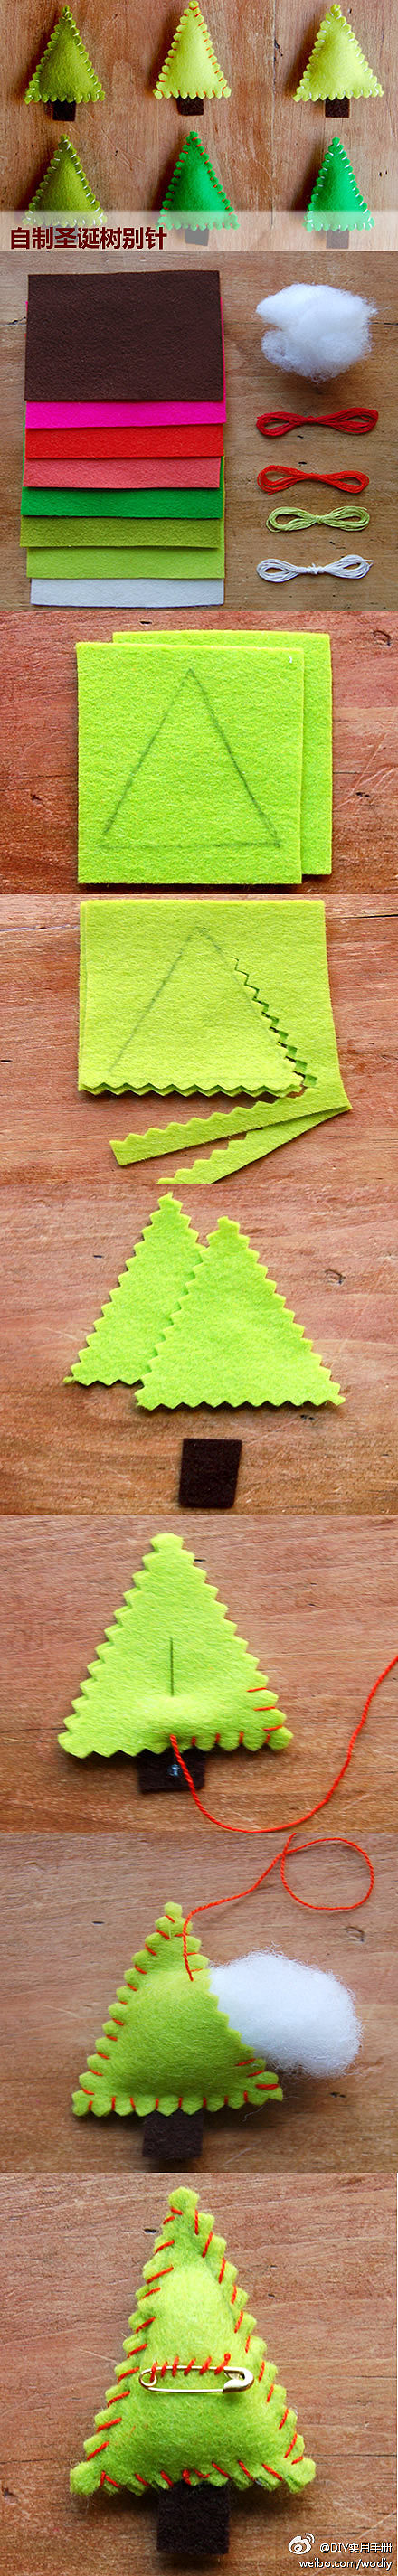 How to make cute Christmas tree clothpin step by step DIY tutorial instructions